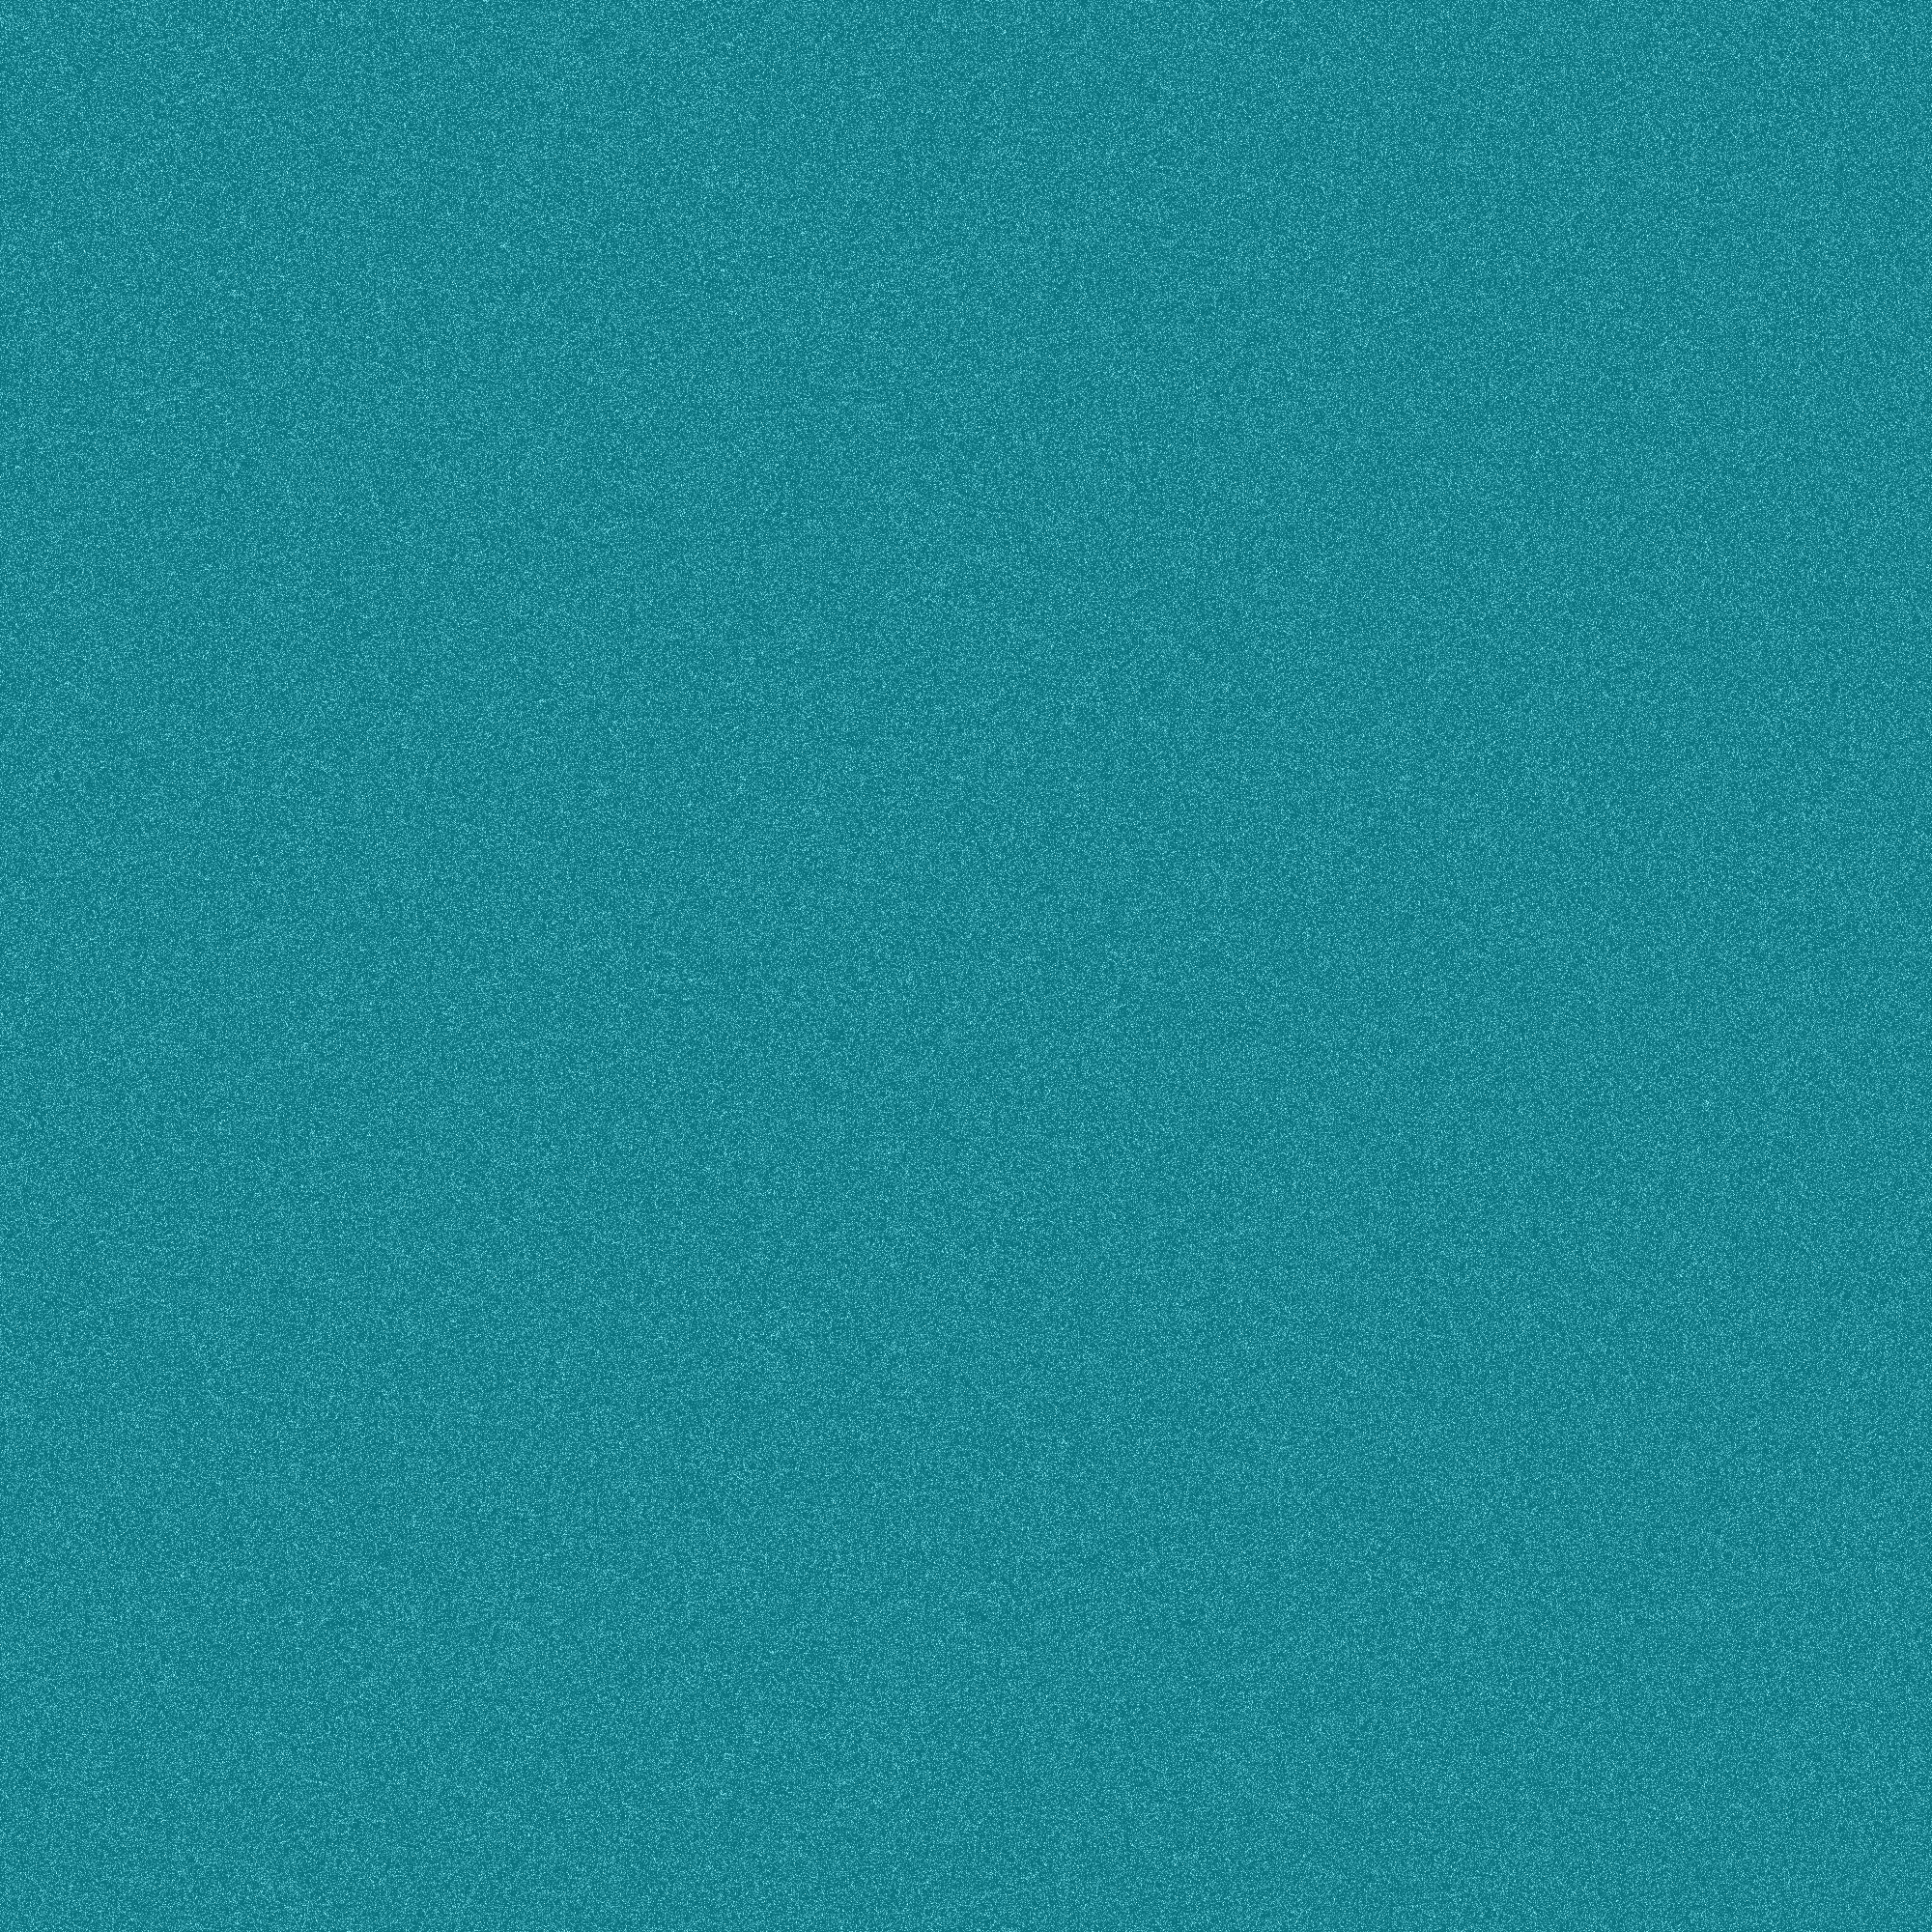 noize_background_turquoise_blue-1